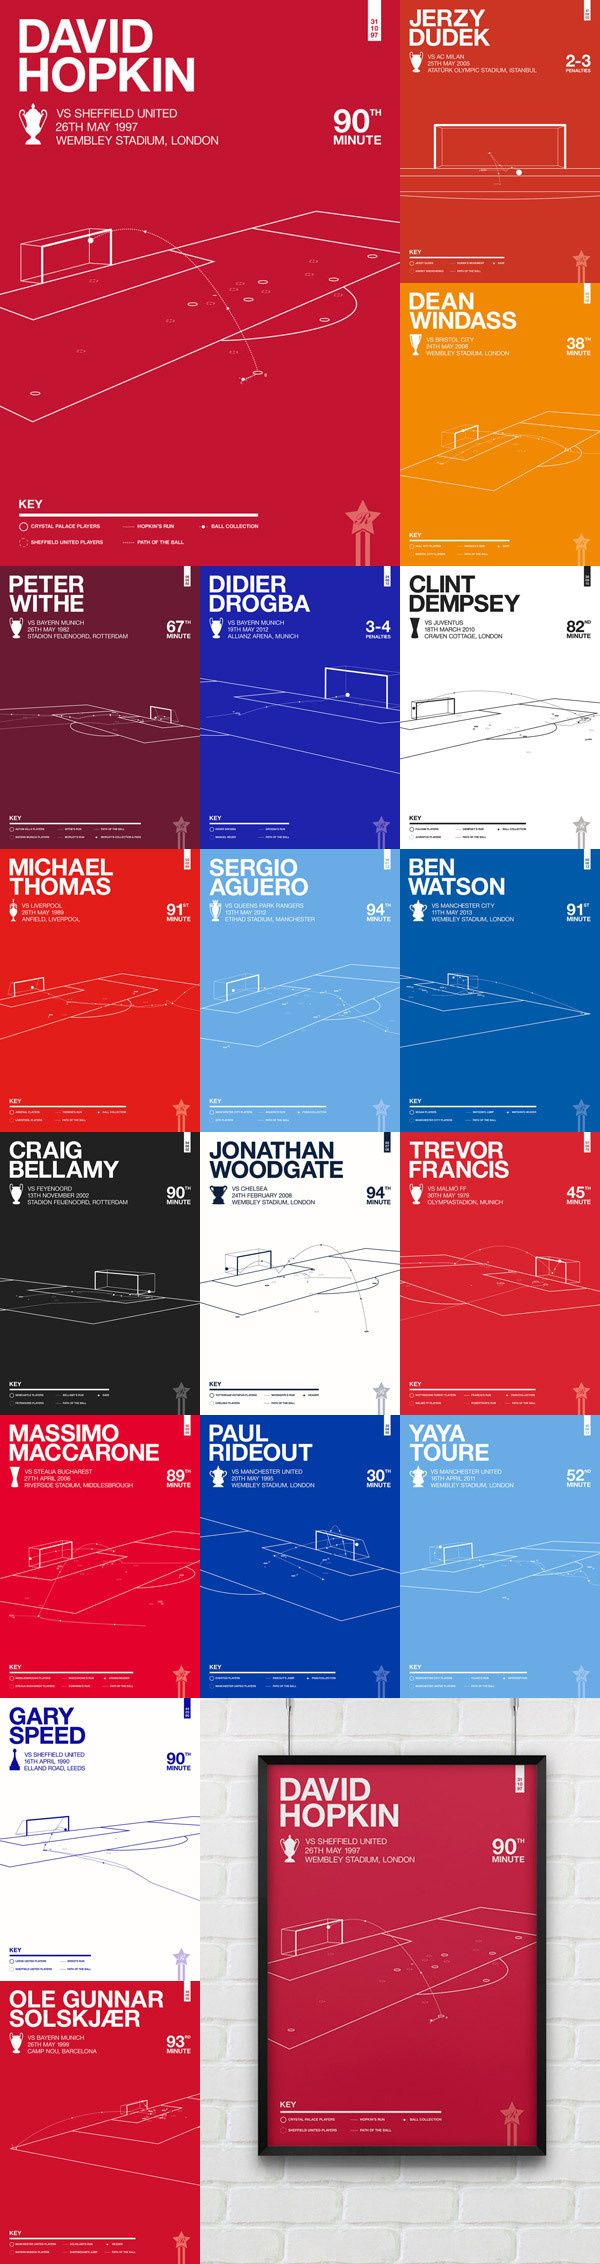 Collection of Graphic Prints for Iconic Football Moments   Created by Rick Hincks